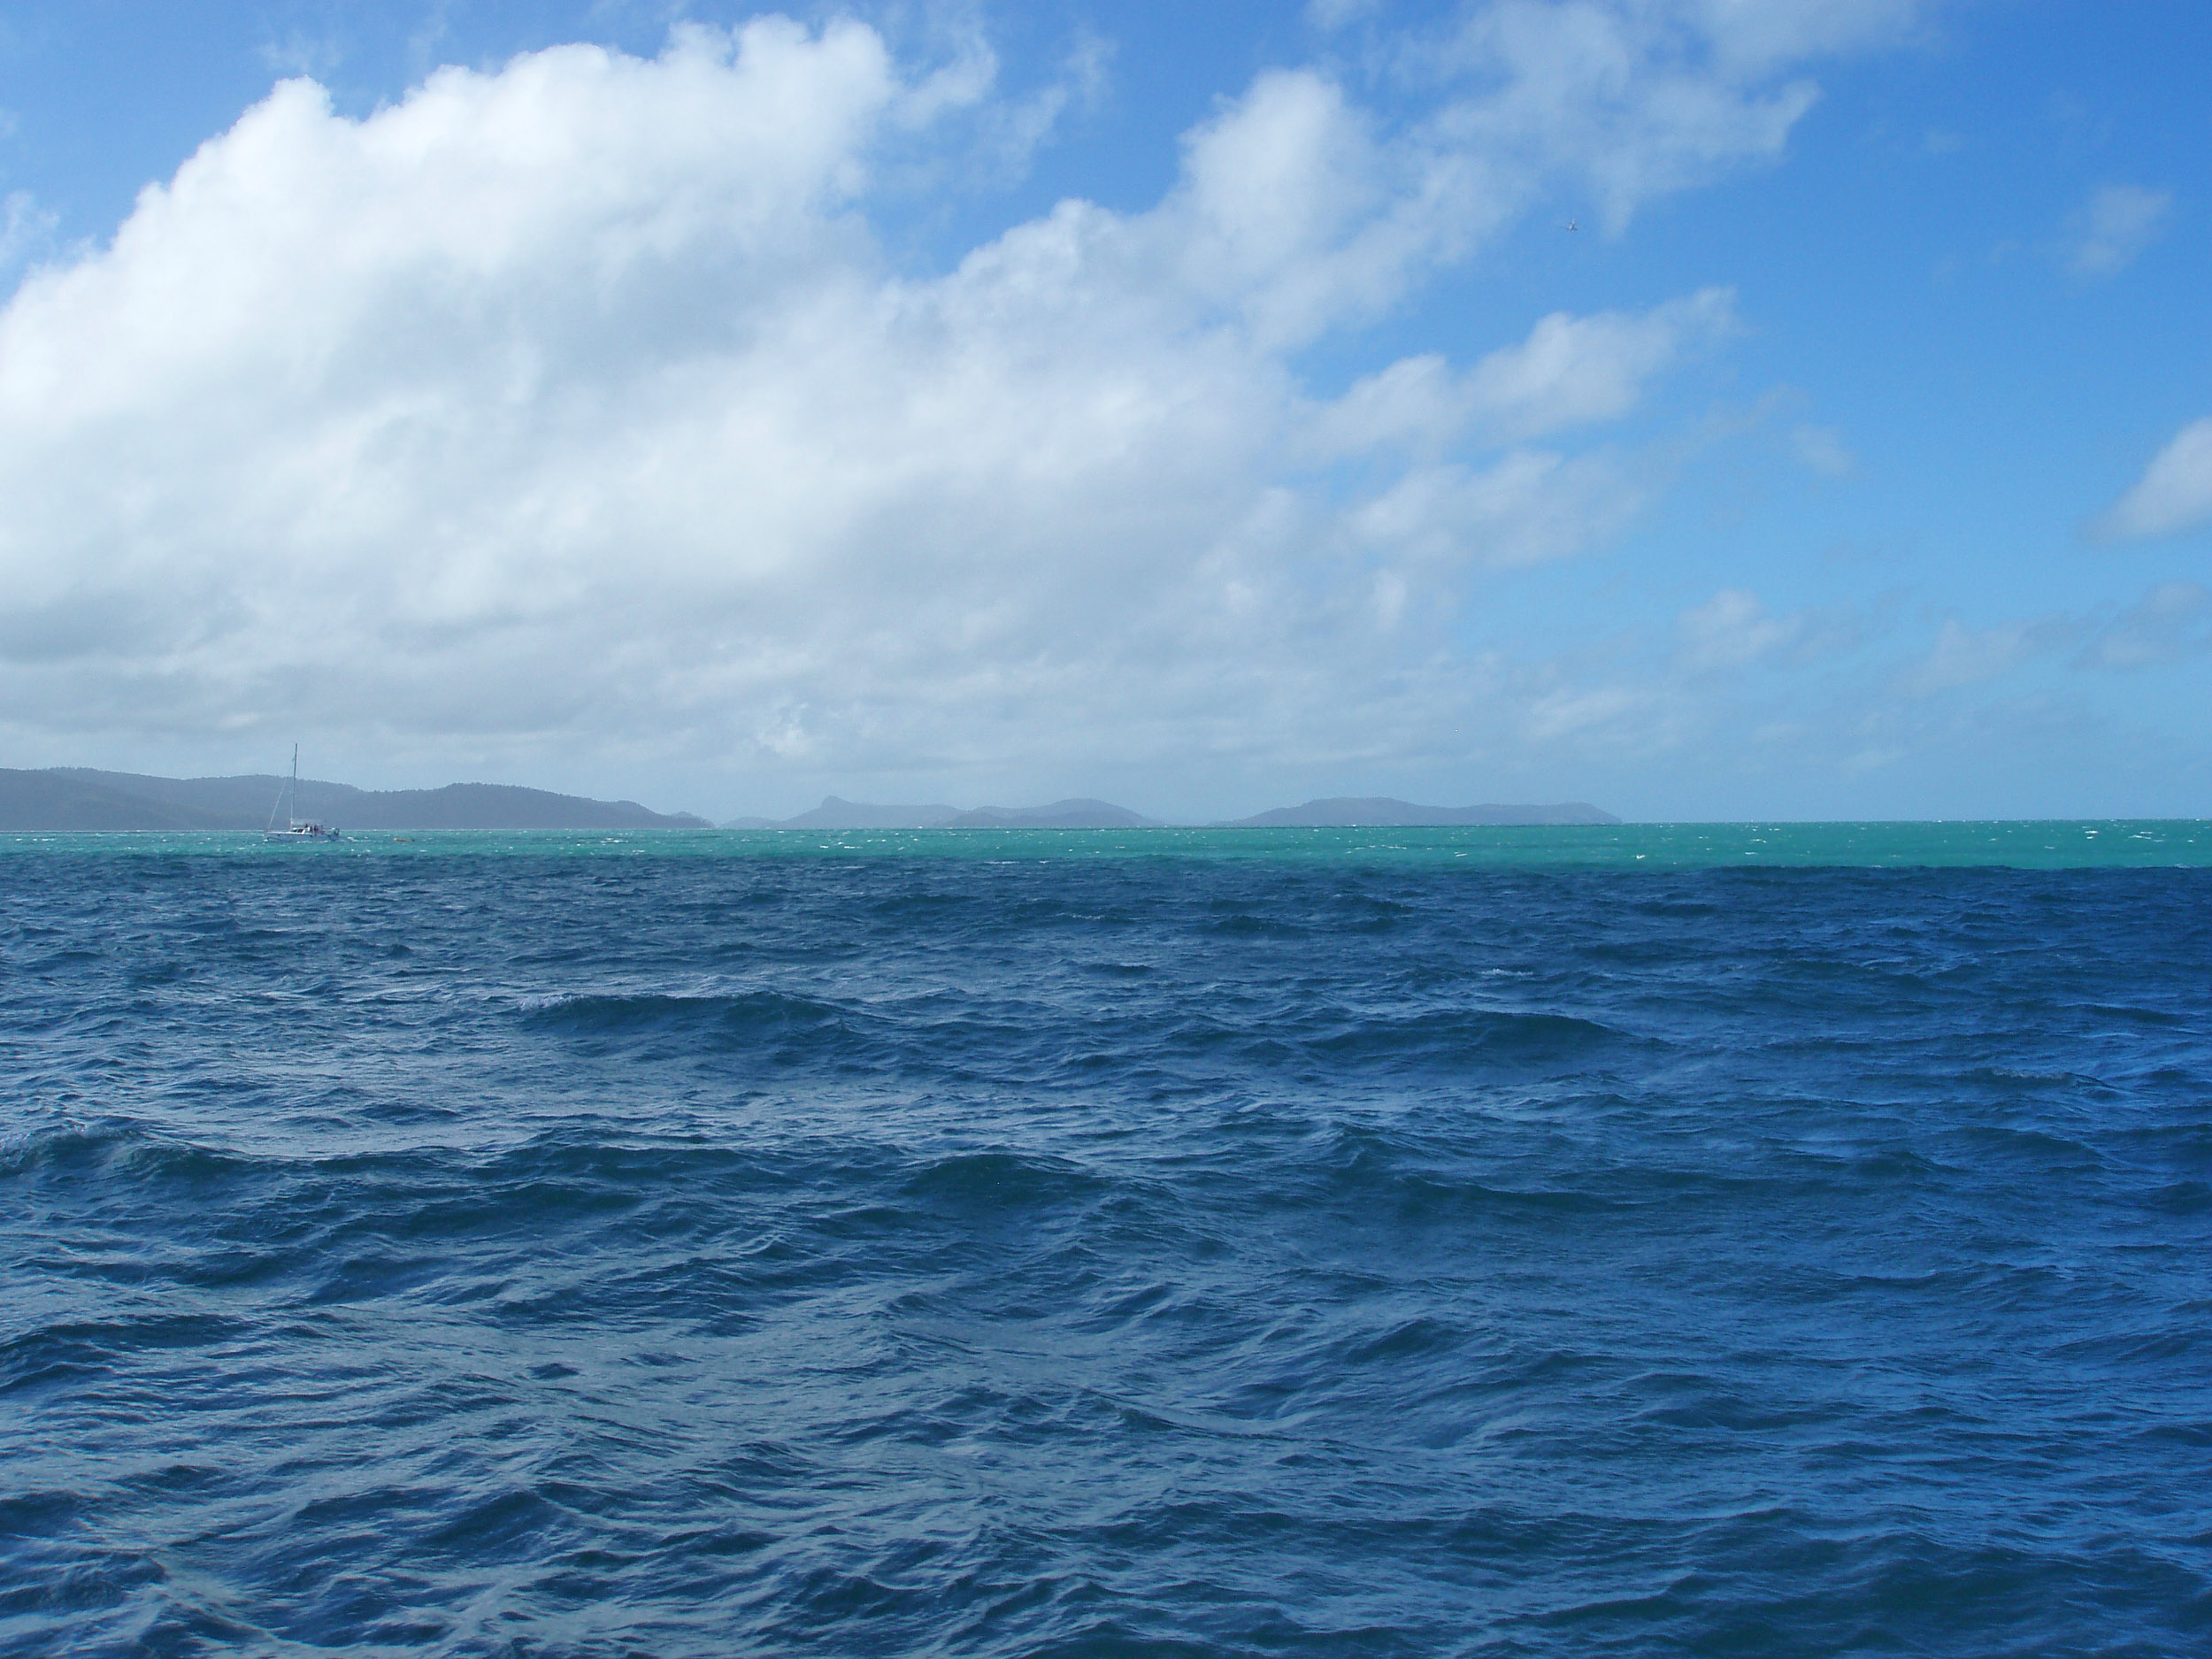 an open expanse of water and a sailing boat, whitsunday passage